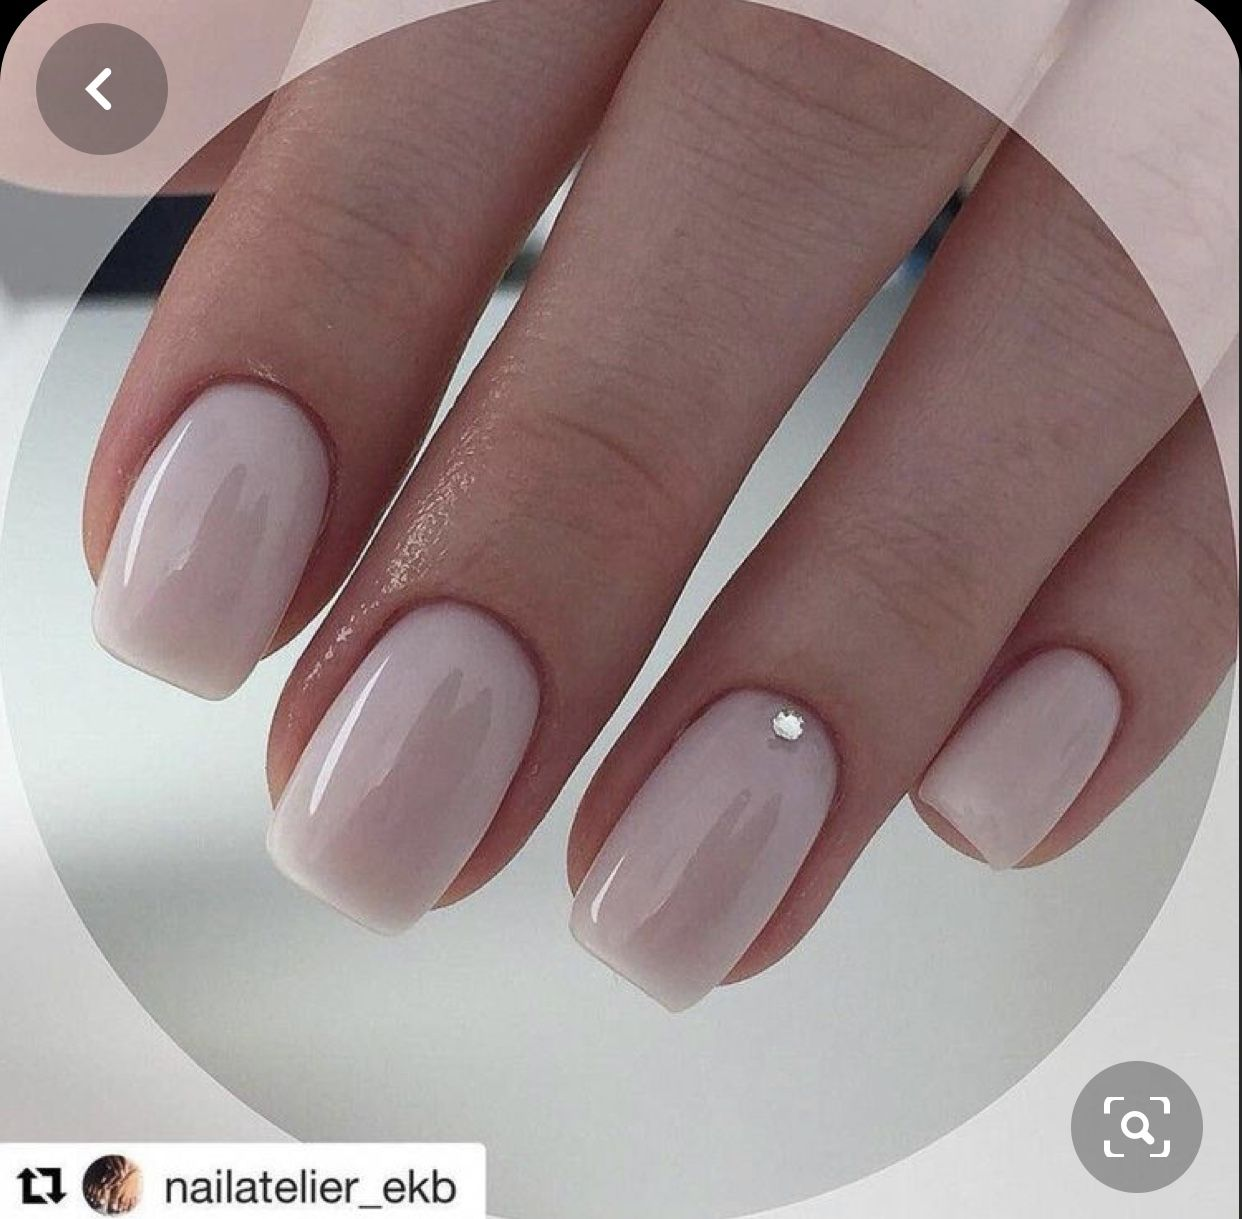 Pin By Denisa On Nails In 2020 Pink Manicure Pink Nails Pale Pink Nails